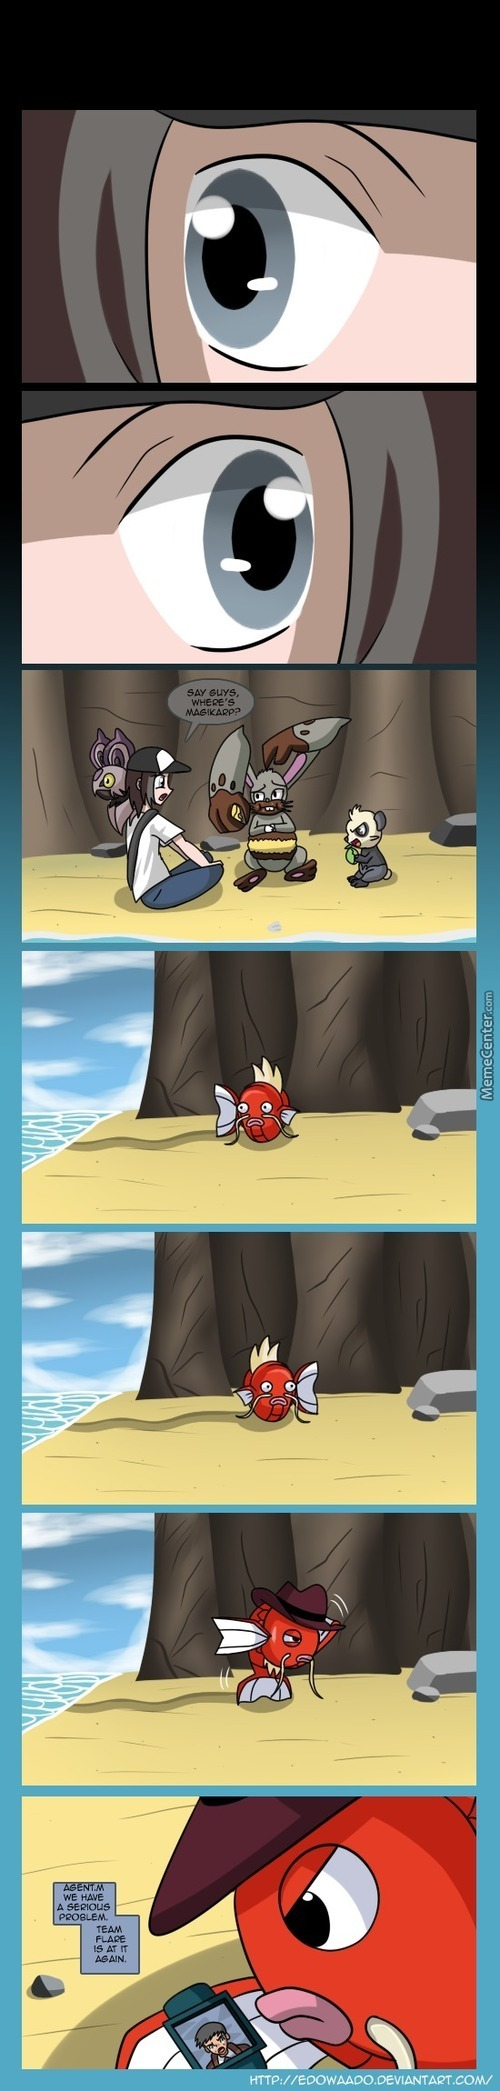 Where's Magikarp?